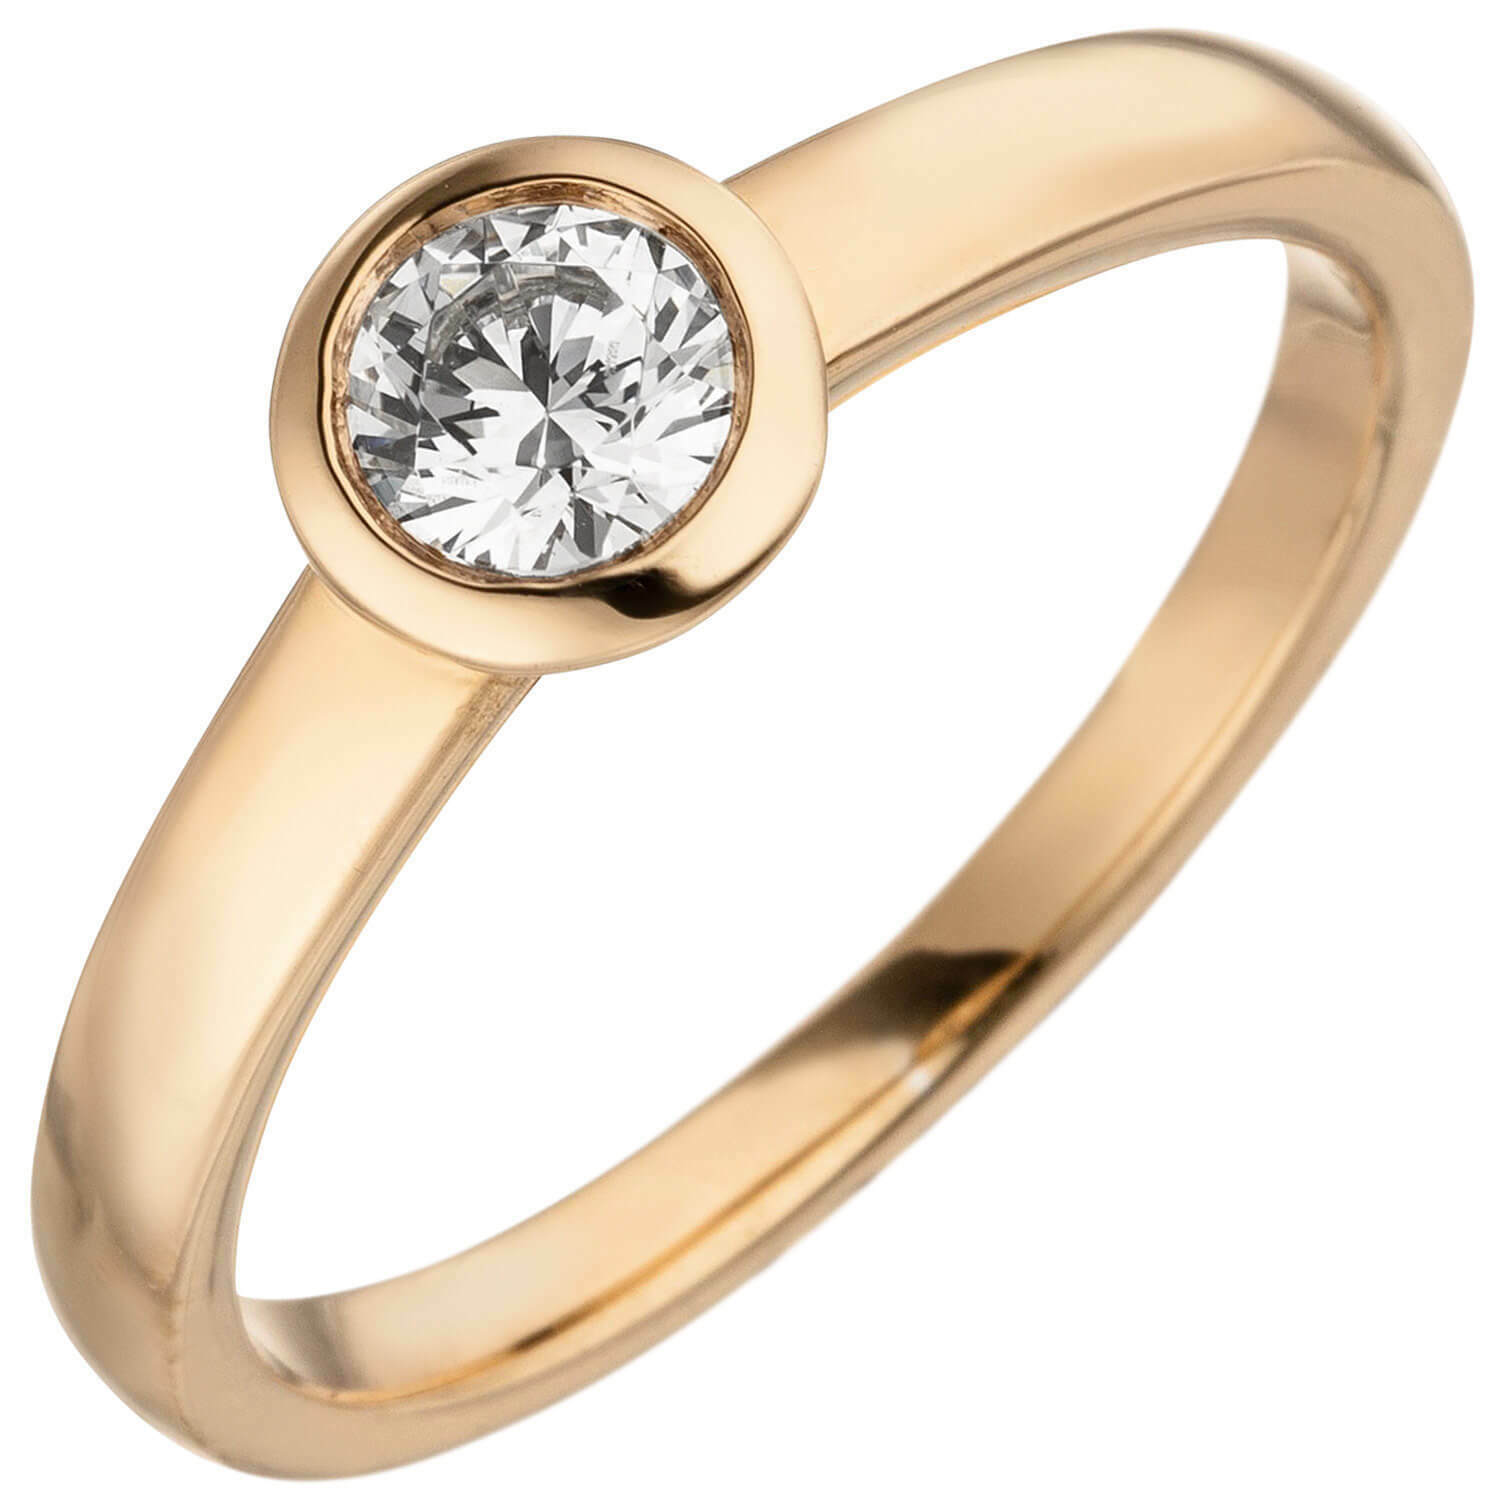 Ring Solitaire Women's Ring with Diamond, round, 585 gold pink gold